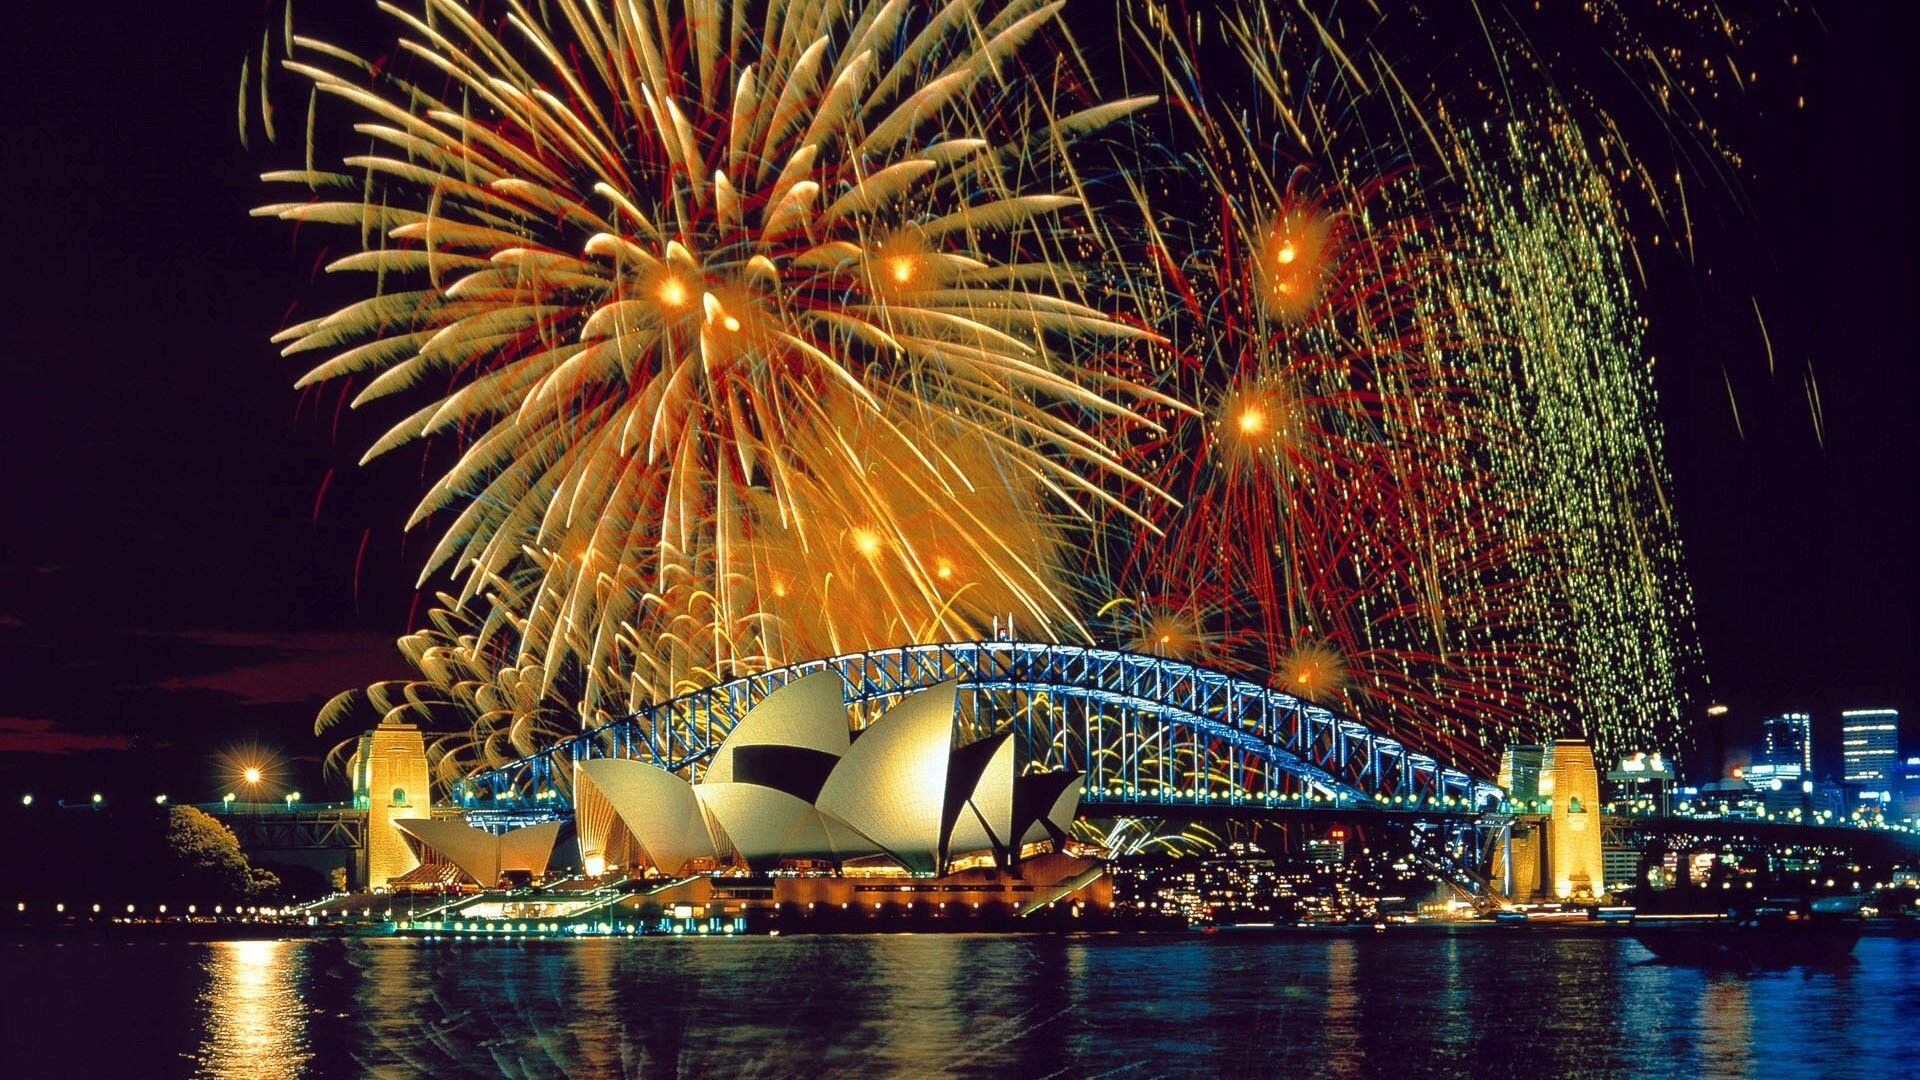 sydney city new year celebrations hd wallpaper hd wallpapers